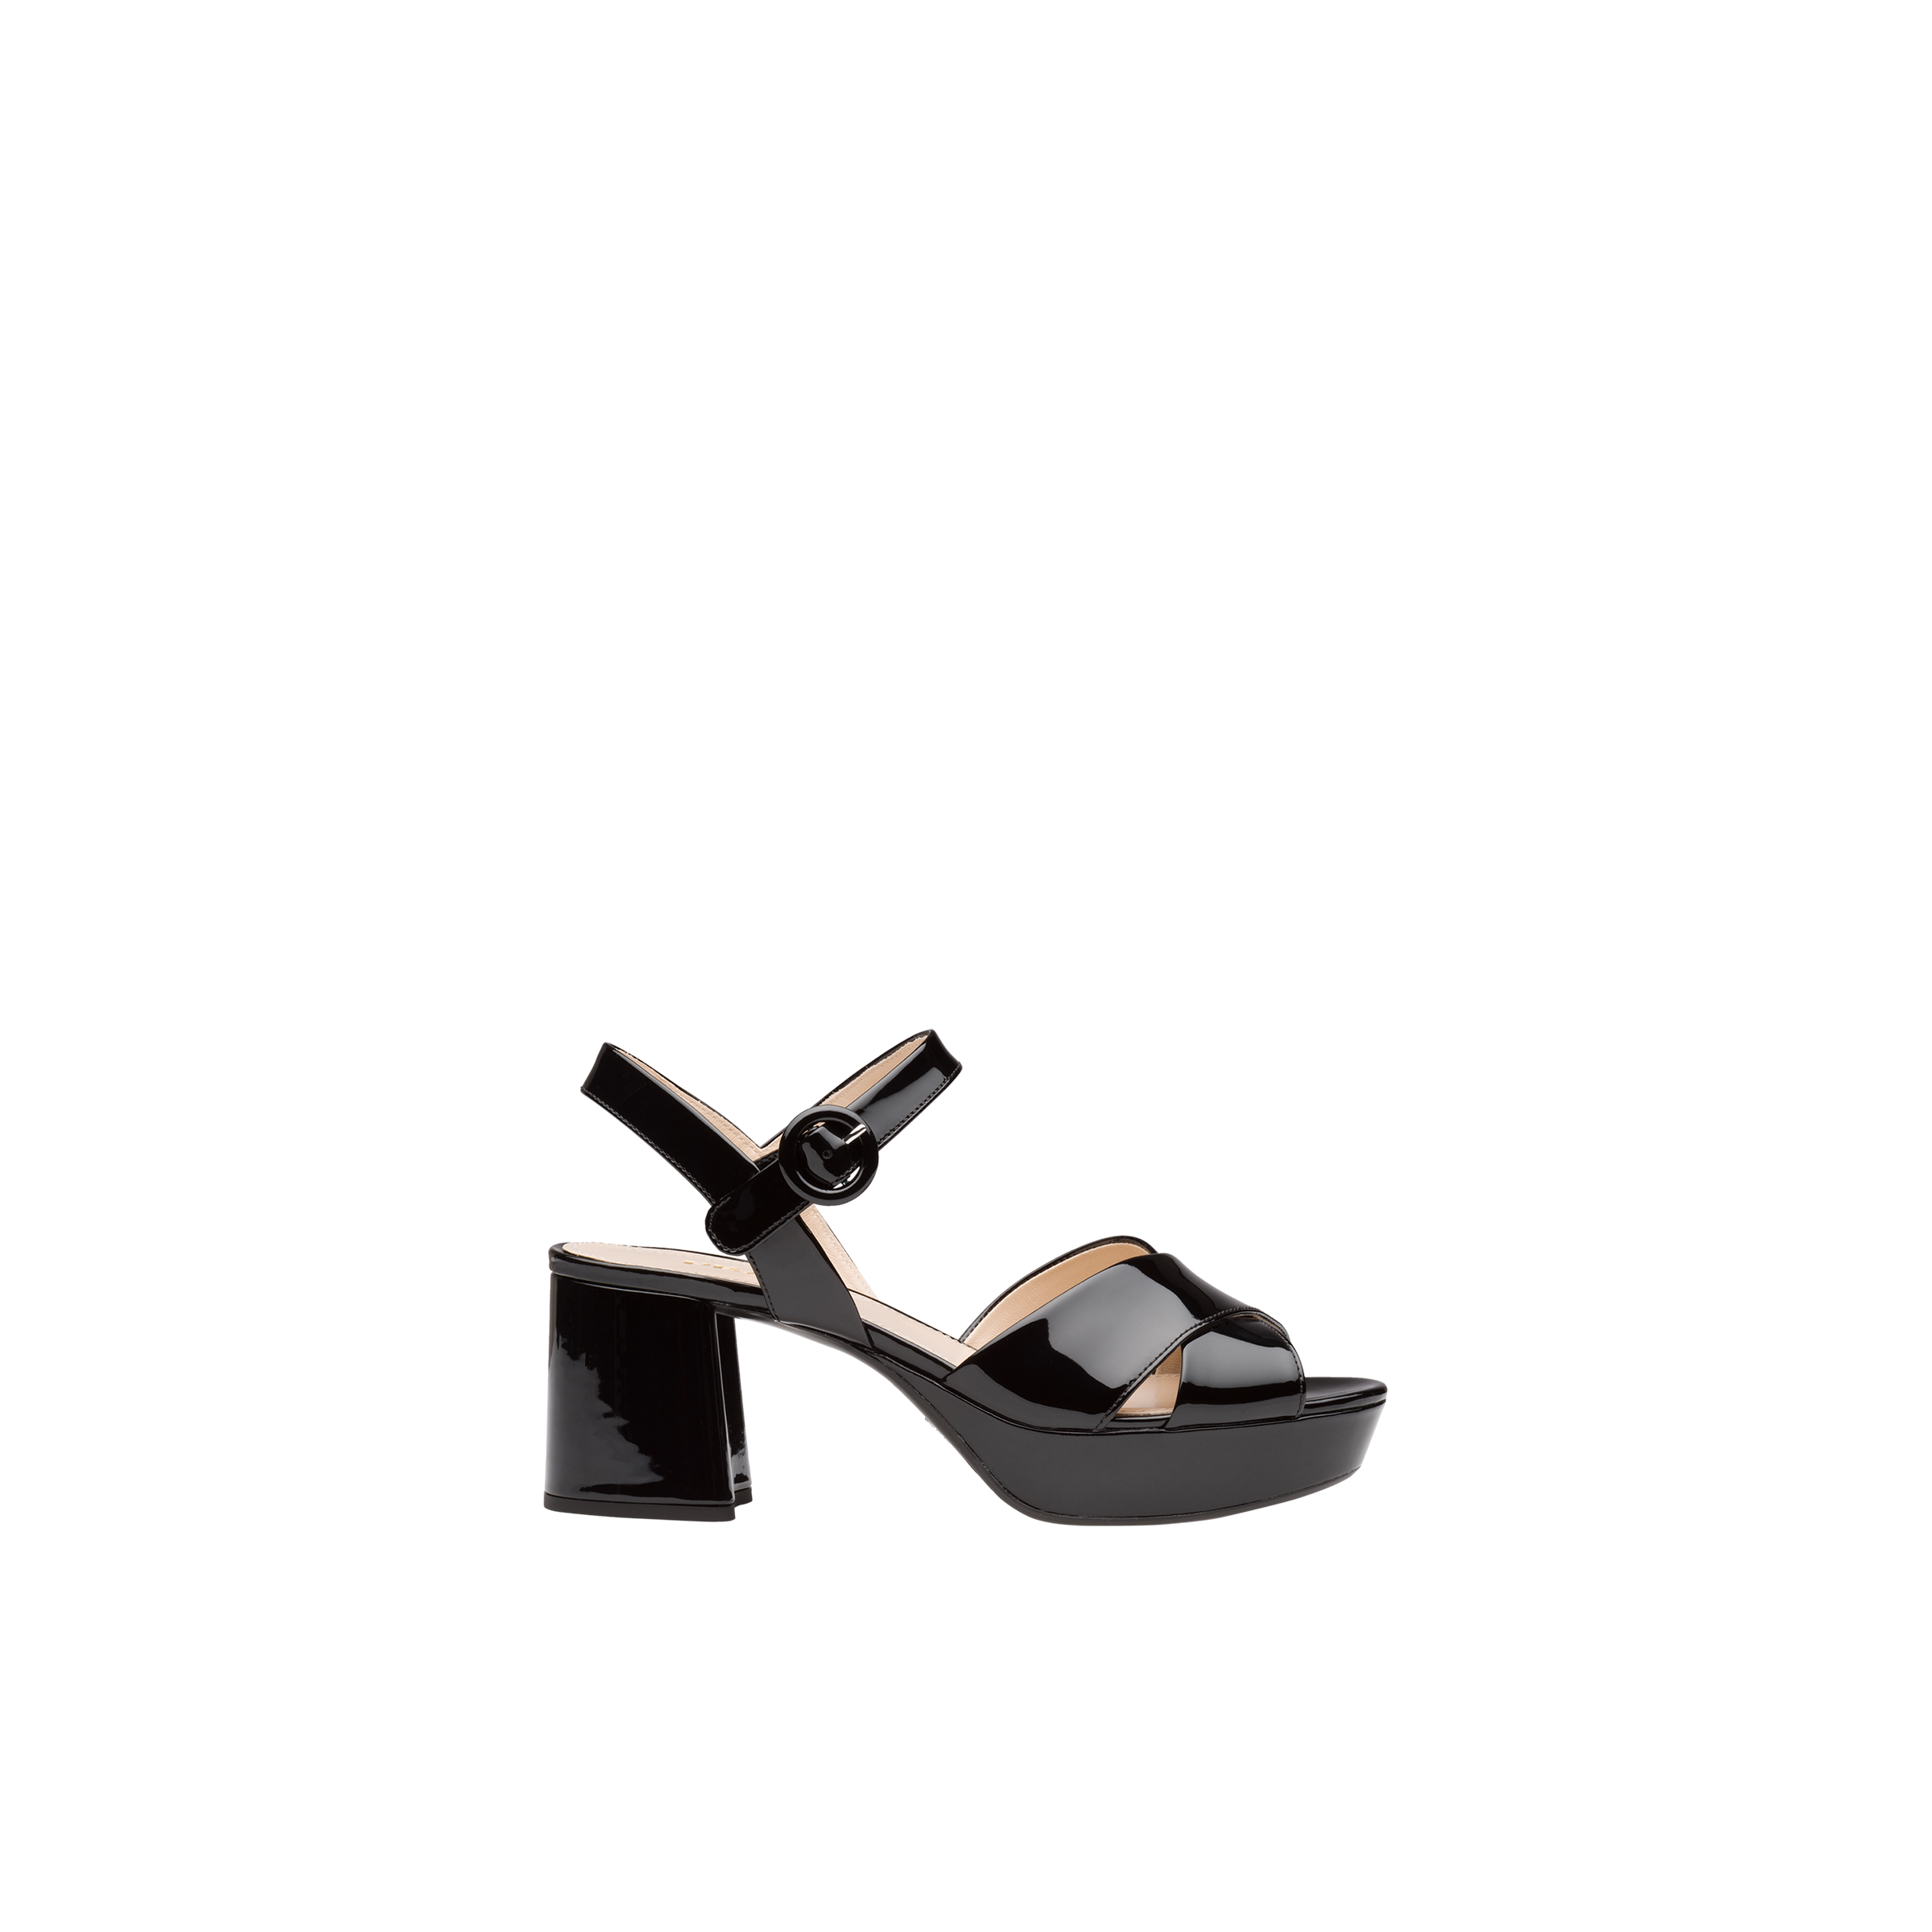 598b7f3c05 Patent leather platform sandals | Prada - 1XP890_069_F0002_F_B065